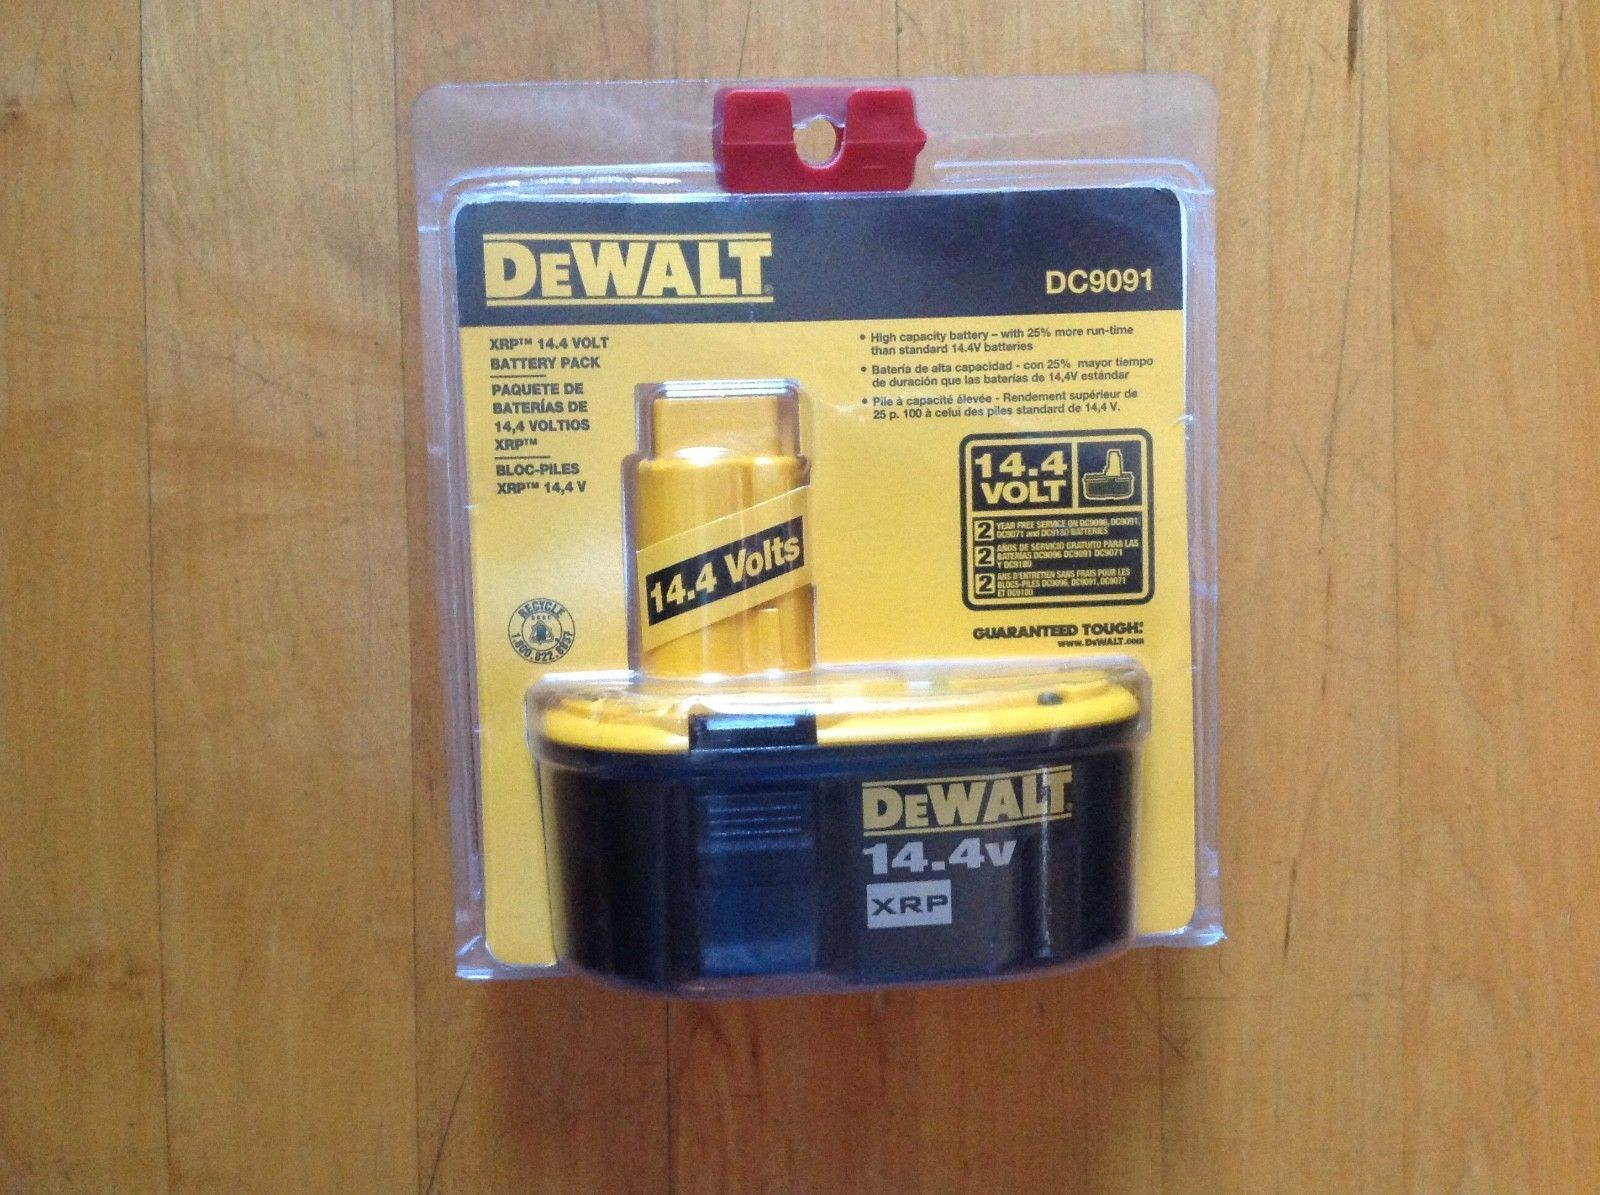 DeWALT DC9091 14.4V 2.4 Amp Hour XRP Cordless Tool Rechargeable Battery New image 2